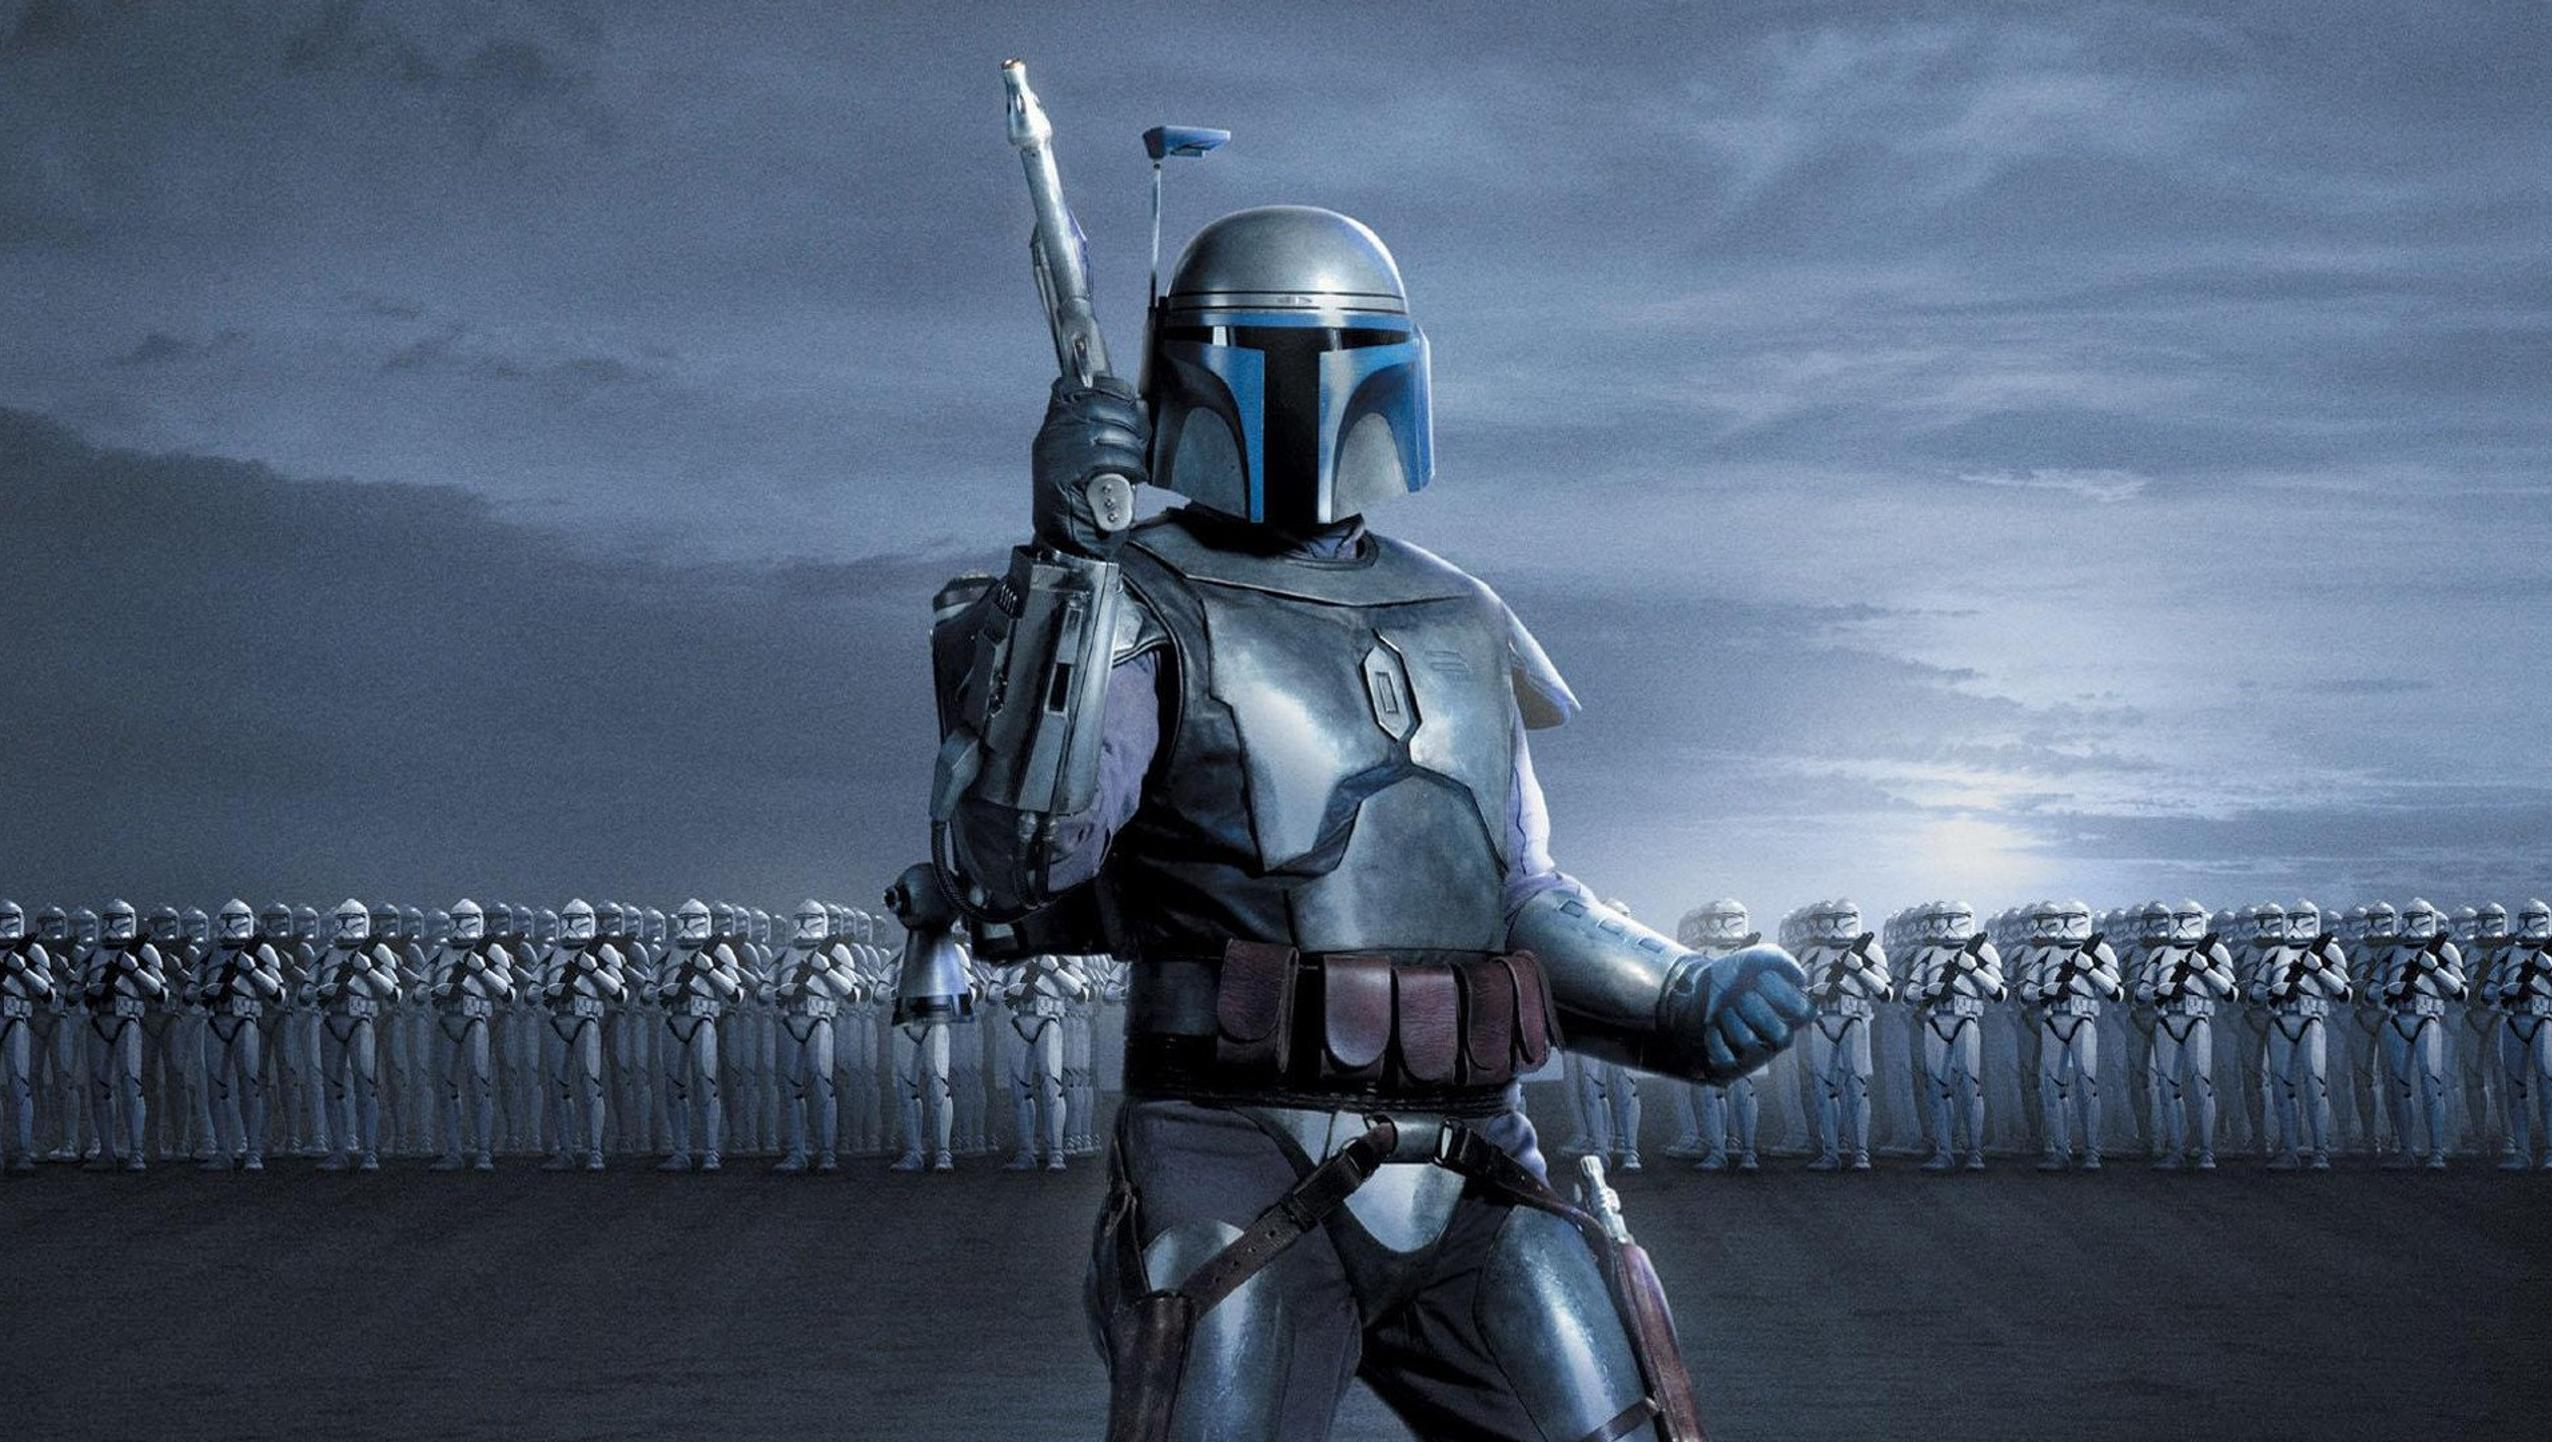 Star Wars Clones Wallpapers Posted By Ryan Sellers